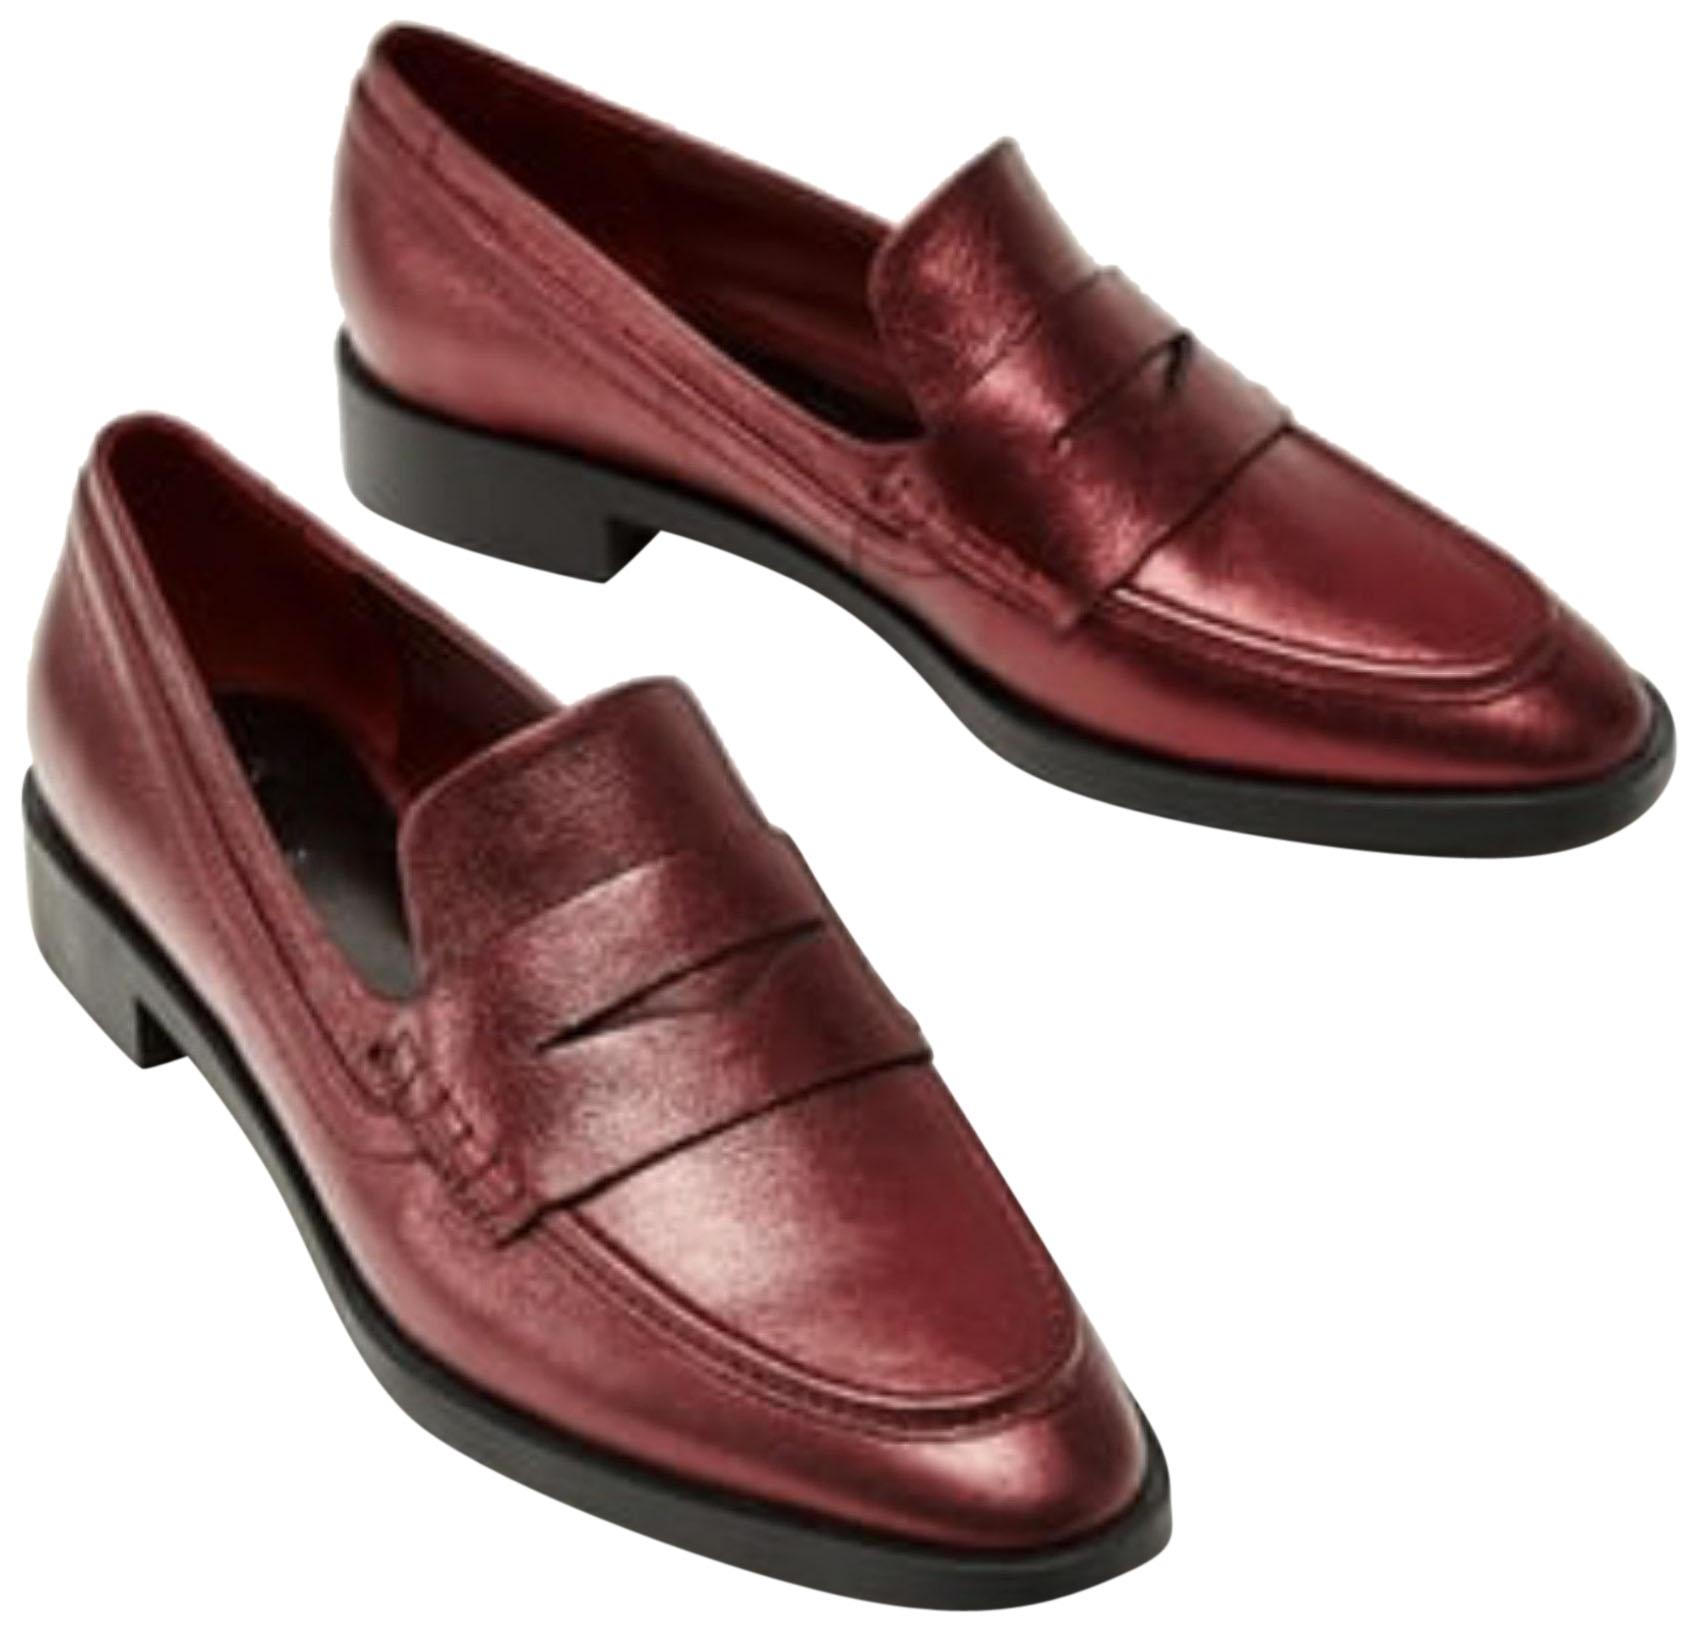 86bcabcd1ff Zara Red Metallic Leather Loafers Flats Size Size Size US 6 Regular ...